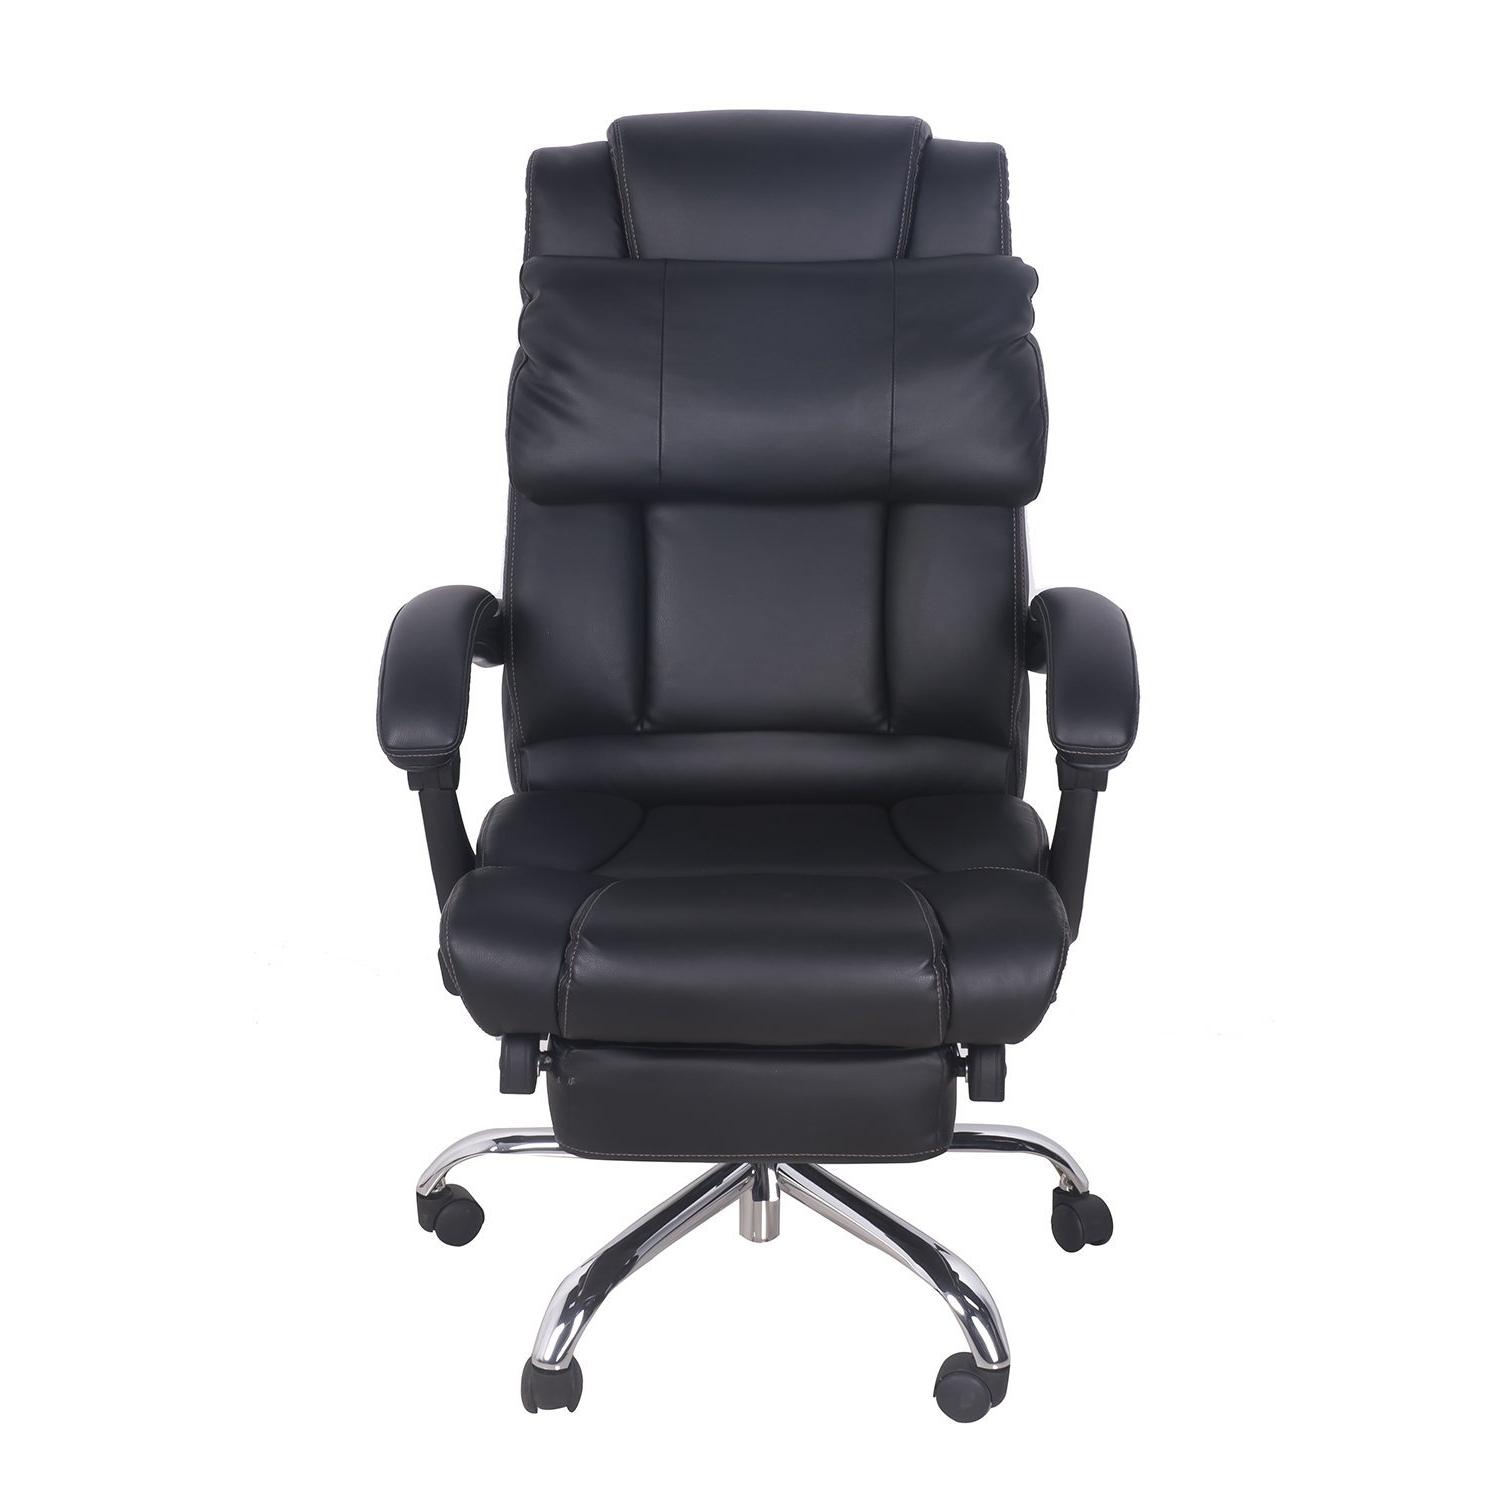 Updated Guide For 2018 Within Leather Executive Office Massage Chairs (Gallery 9 of 20)